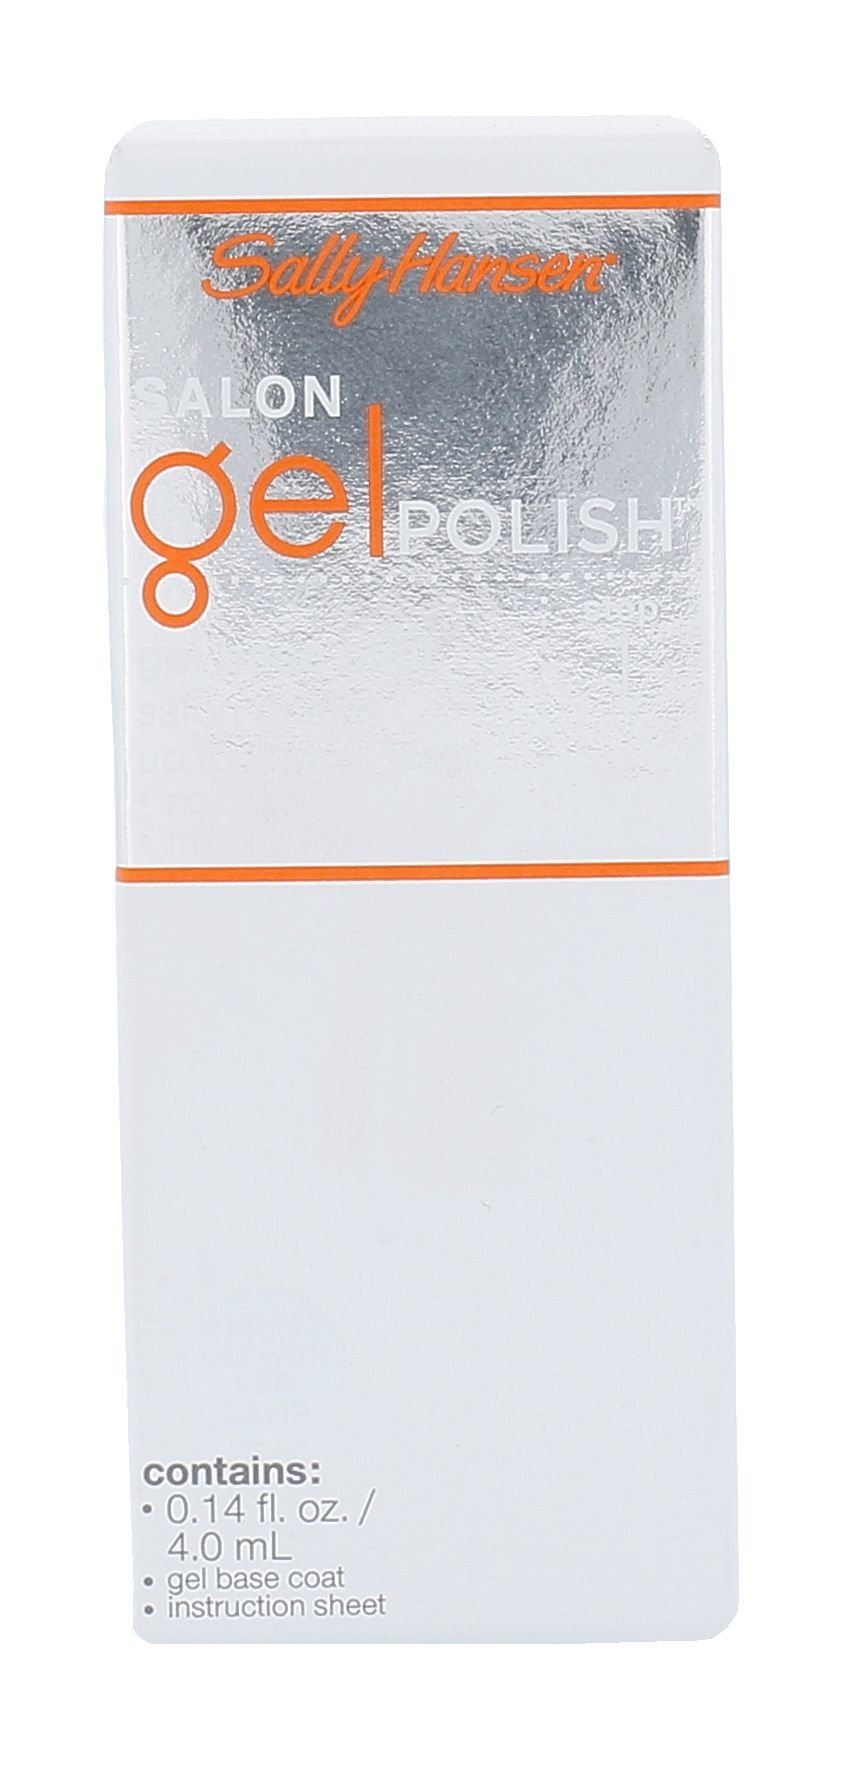 Sally Hansen Salon Gel Polish Cosmetic 4ml  Step 1